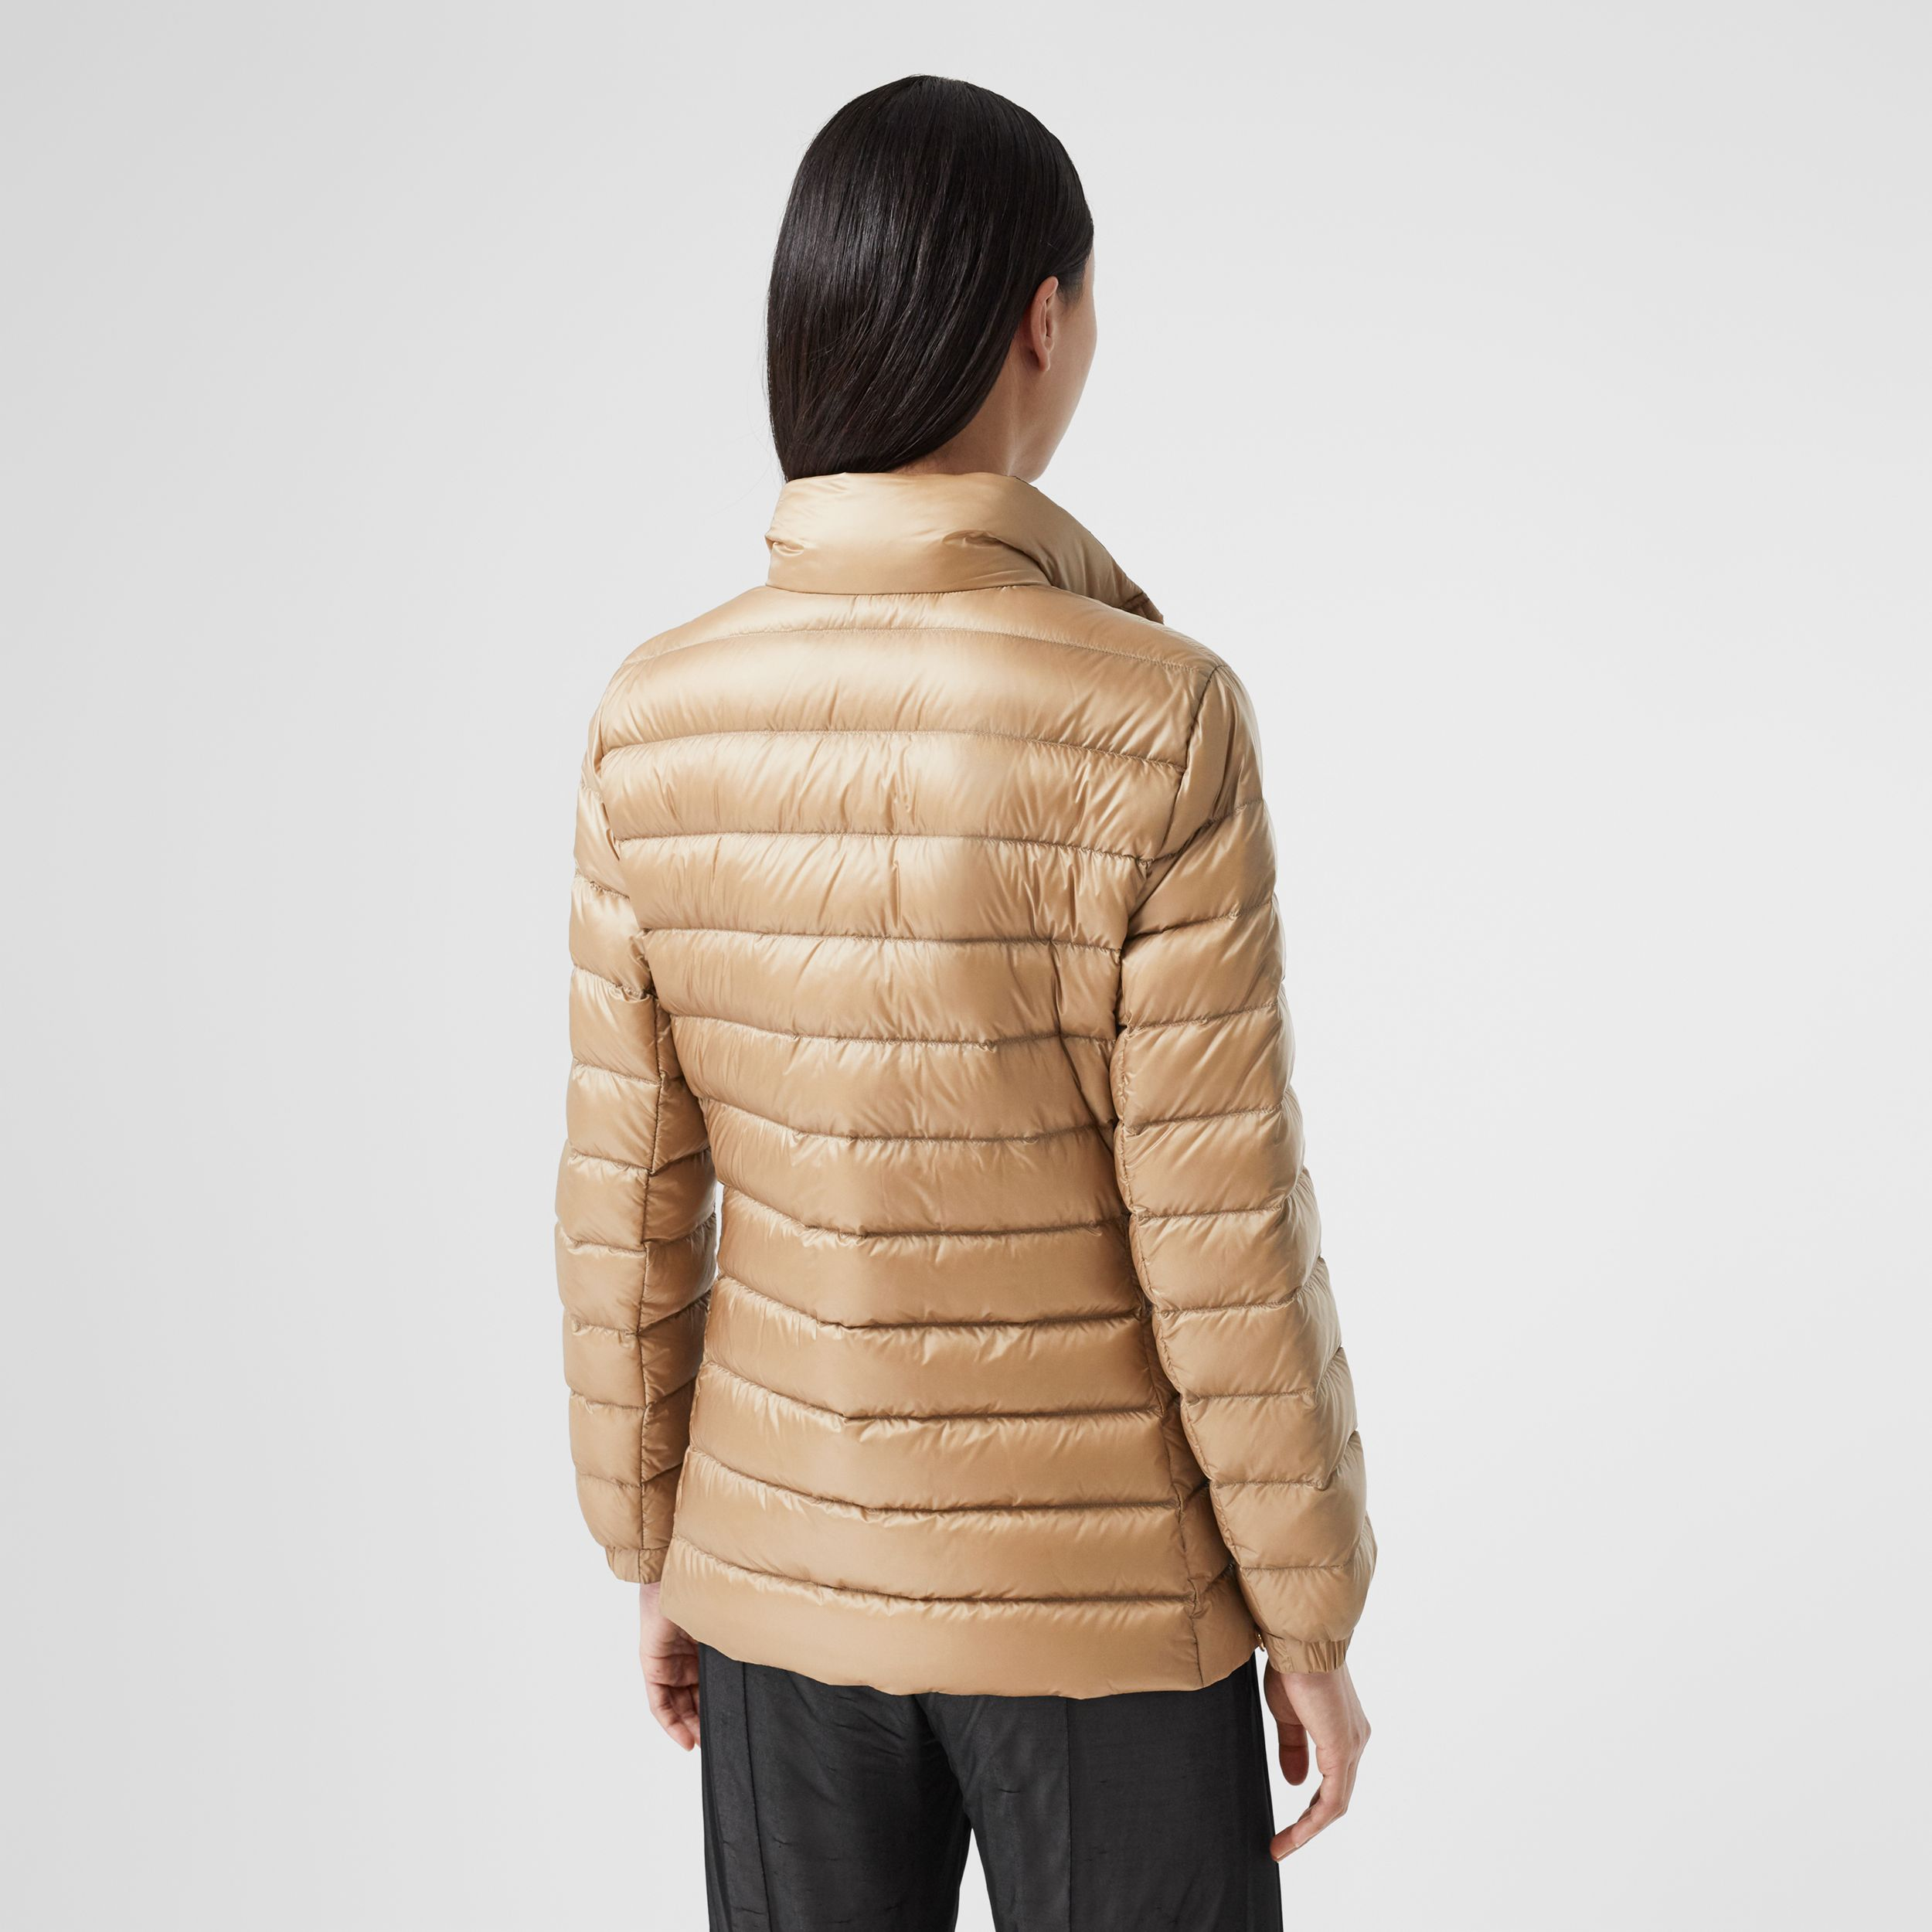 Monogram Print-lined Lightweight Puffer Jacket - Women | Burberry - 3